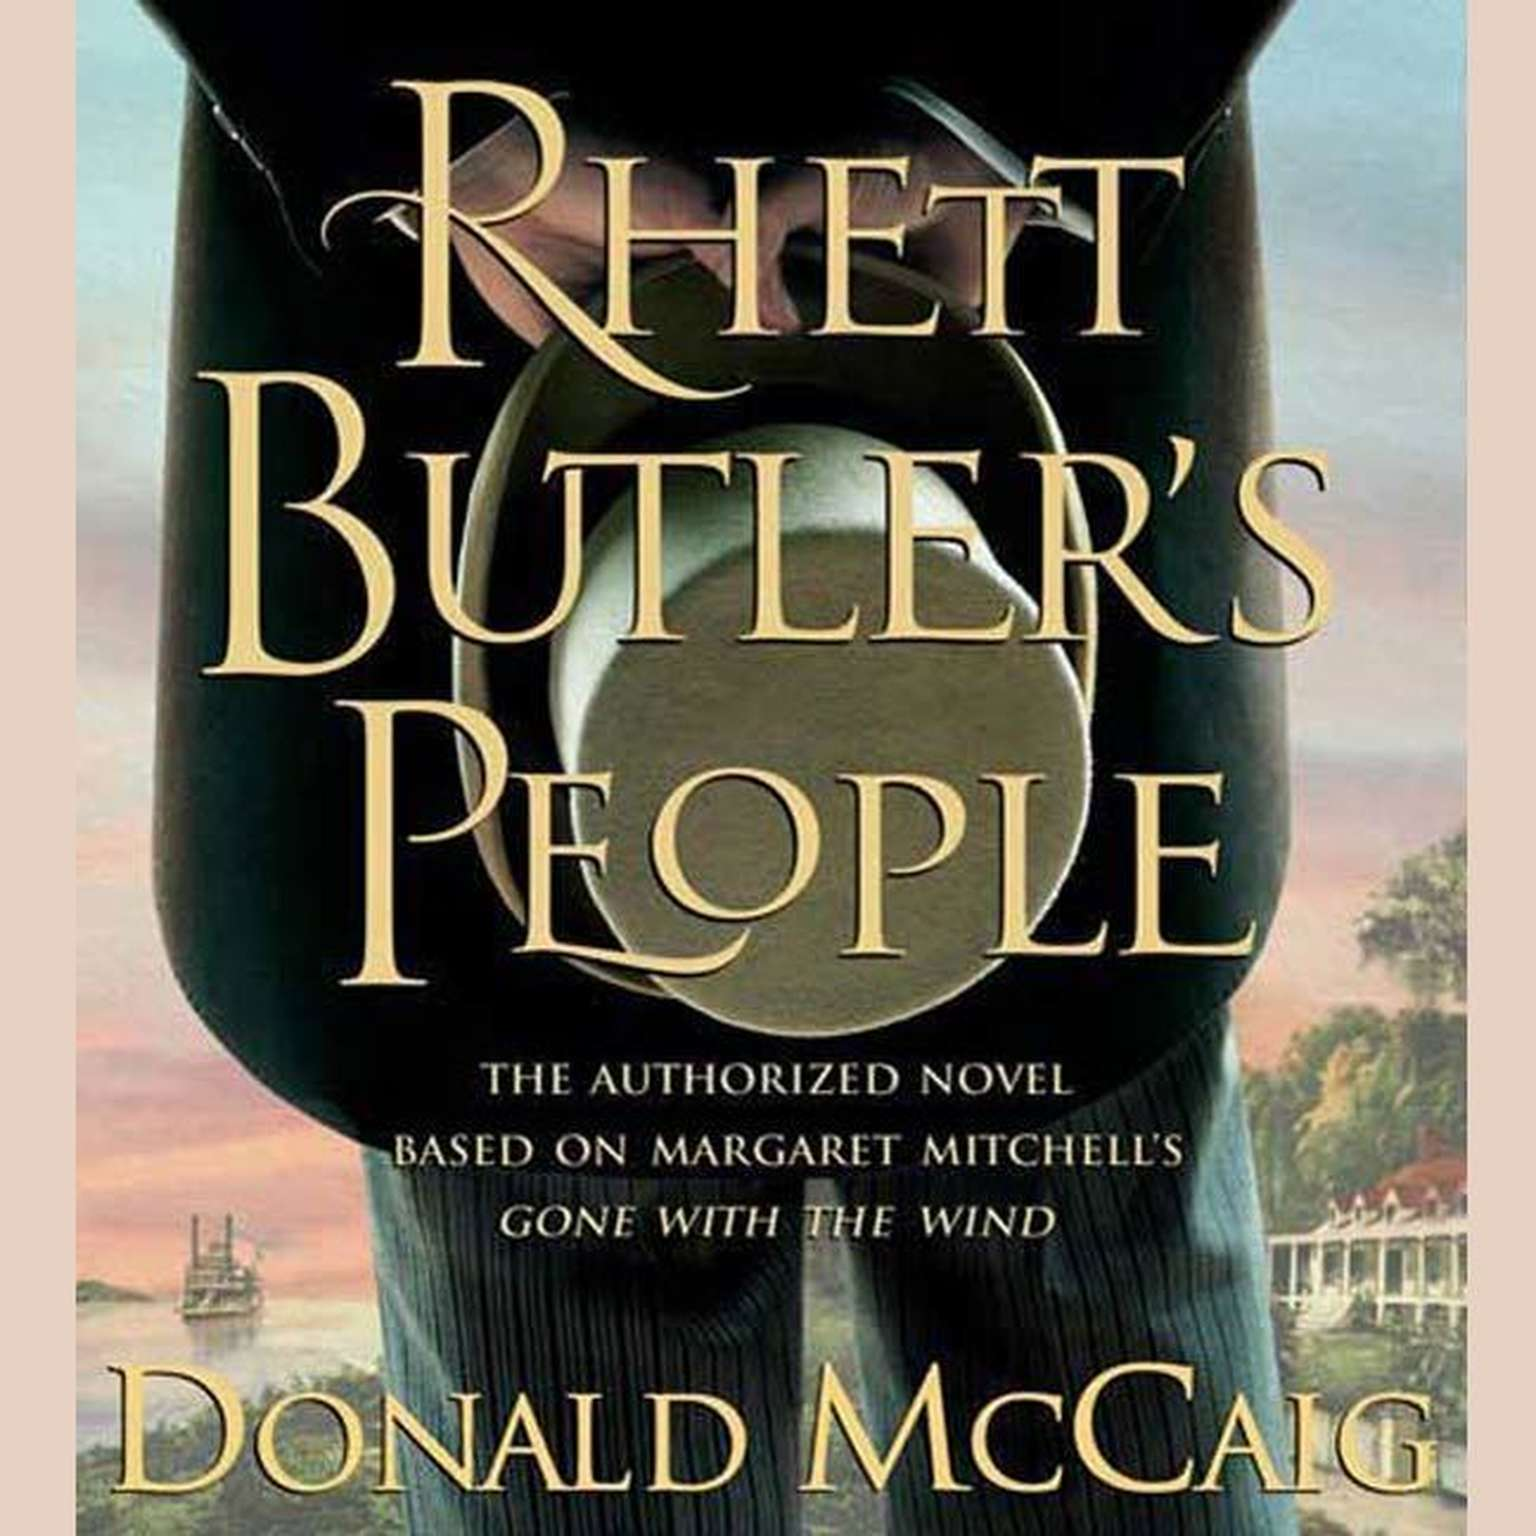 Printable Rhett Butler's People: The Authorized Novel based on Margaret Mitchell's Gone with the Wind Audiobook Cover Art